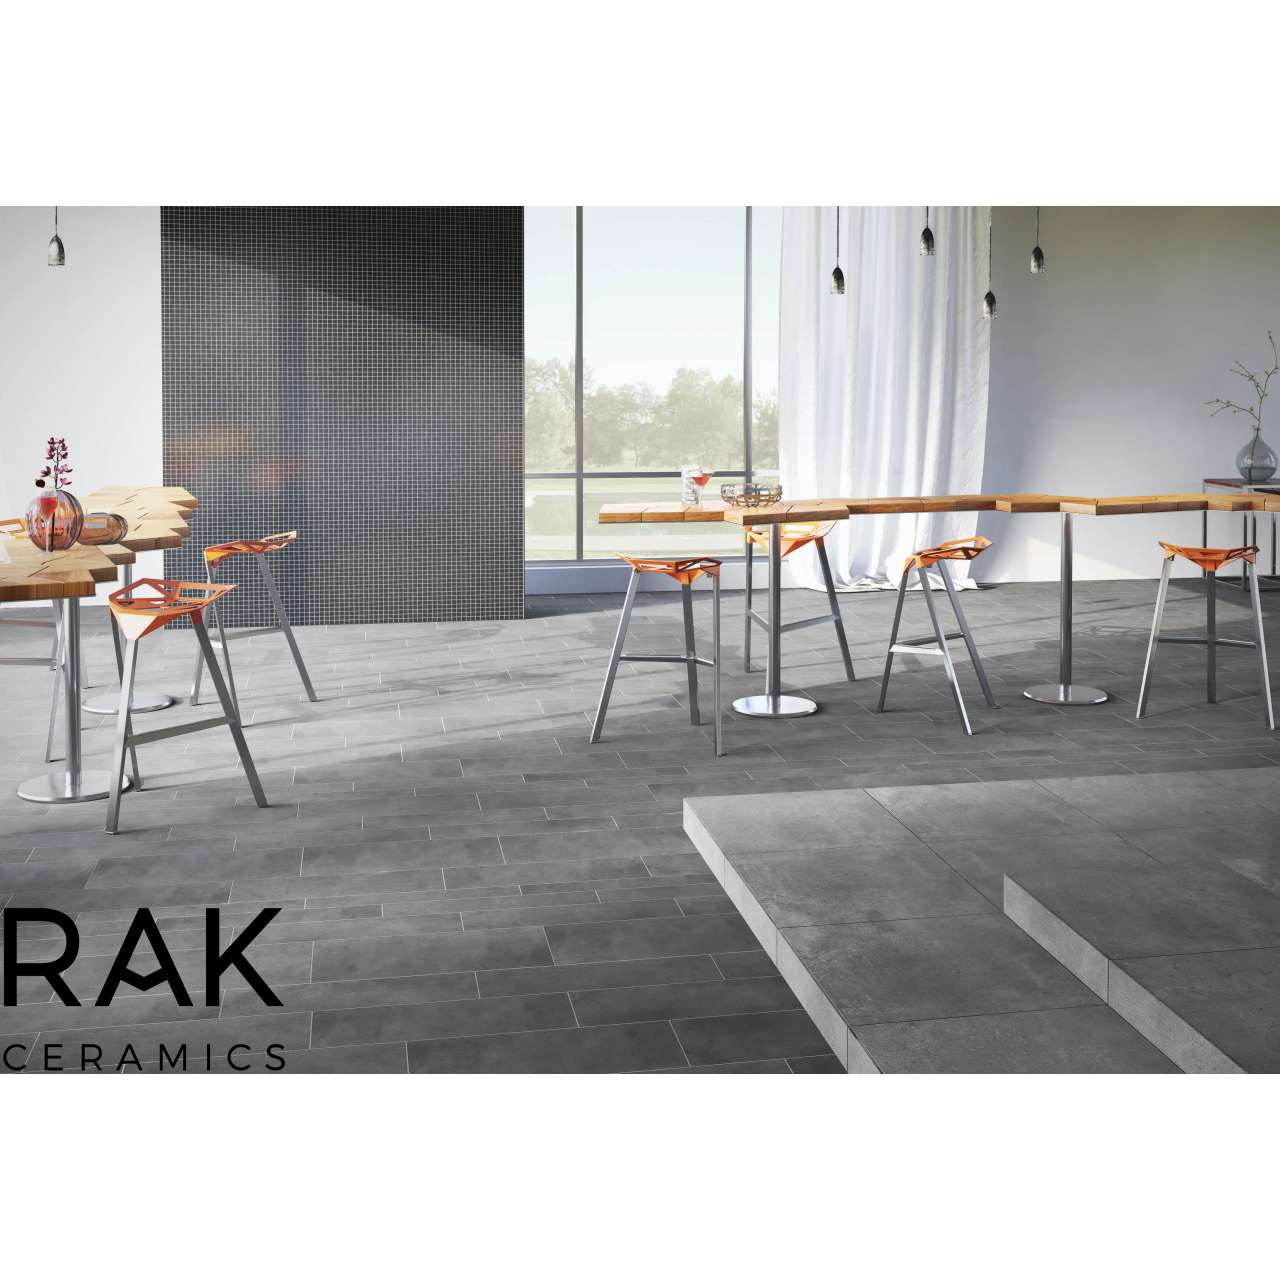 RAK Surface Off White Matt 30cm x 30cm Sheet Linear Bricks Porcelain Mosaic Tile - AM-GZSUR-OW.RT/BRK